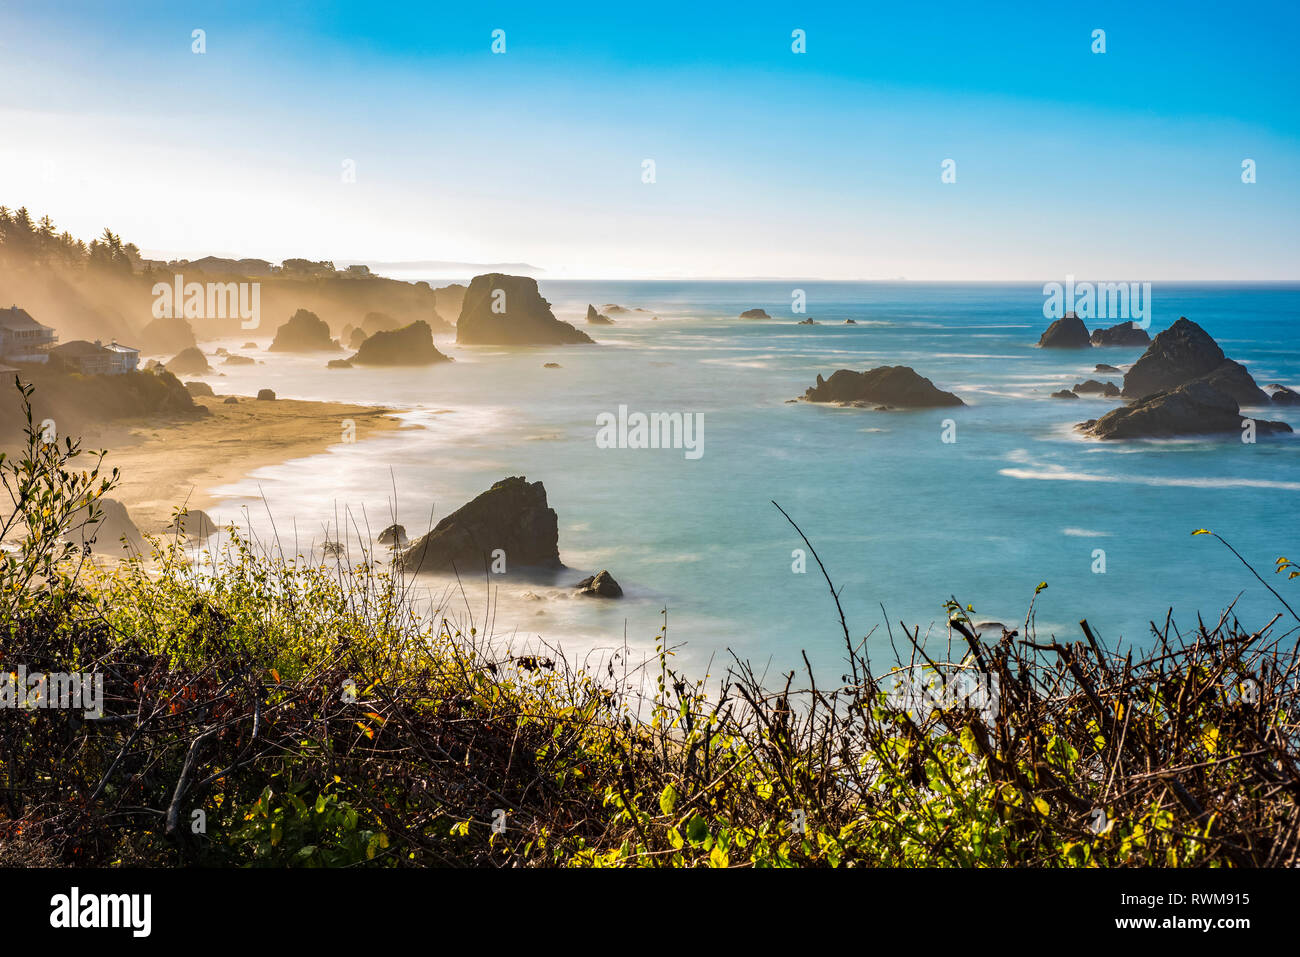 Morning mist rising from Harris Beach, near Brookings, Oregon. The rock formations add to the views looking out at the Pacific Ocean - Stock Image